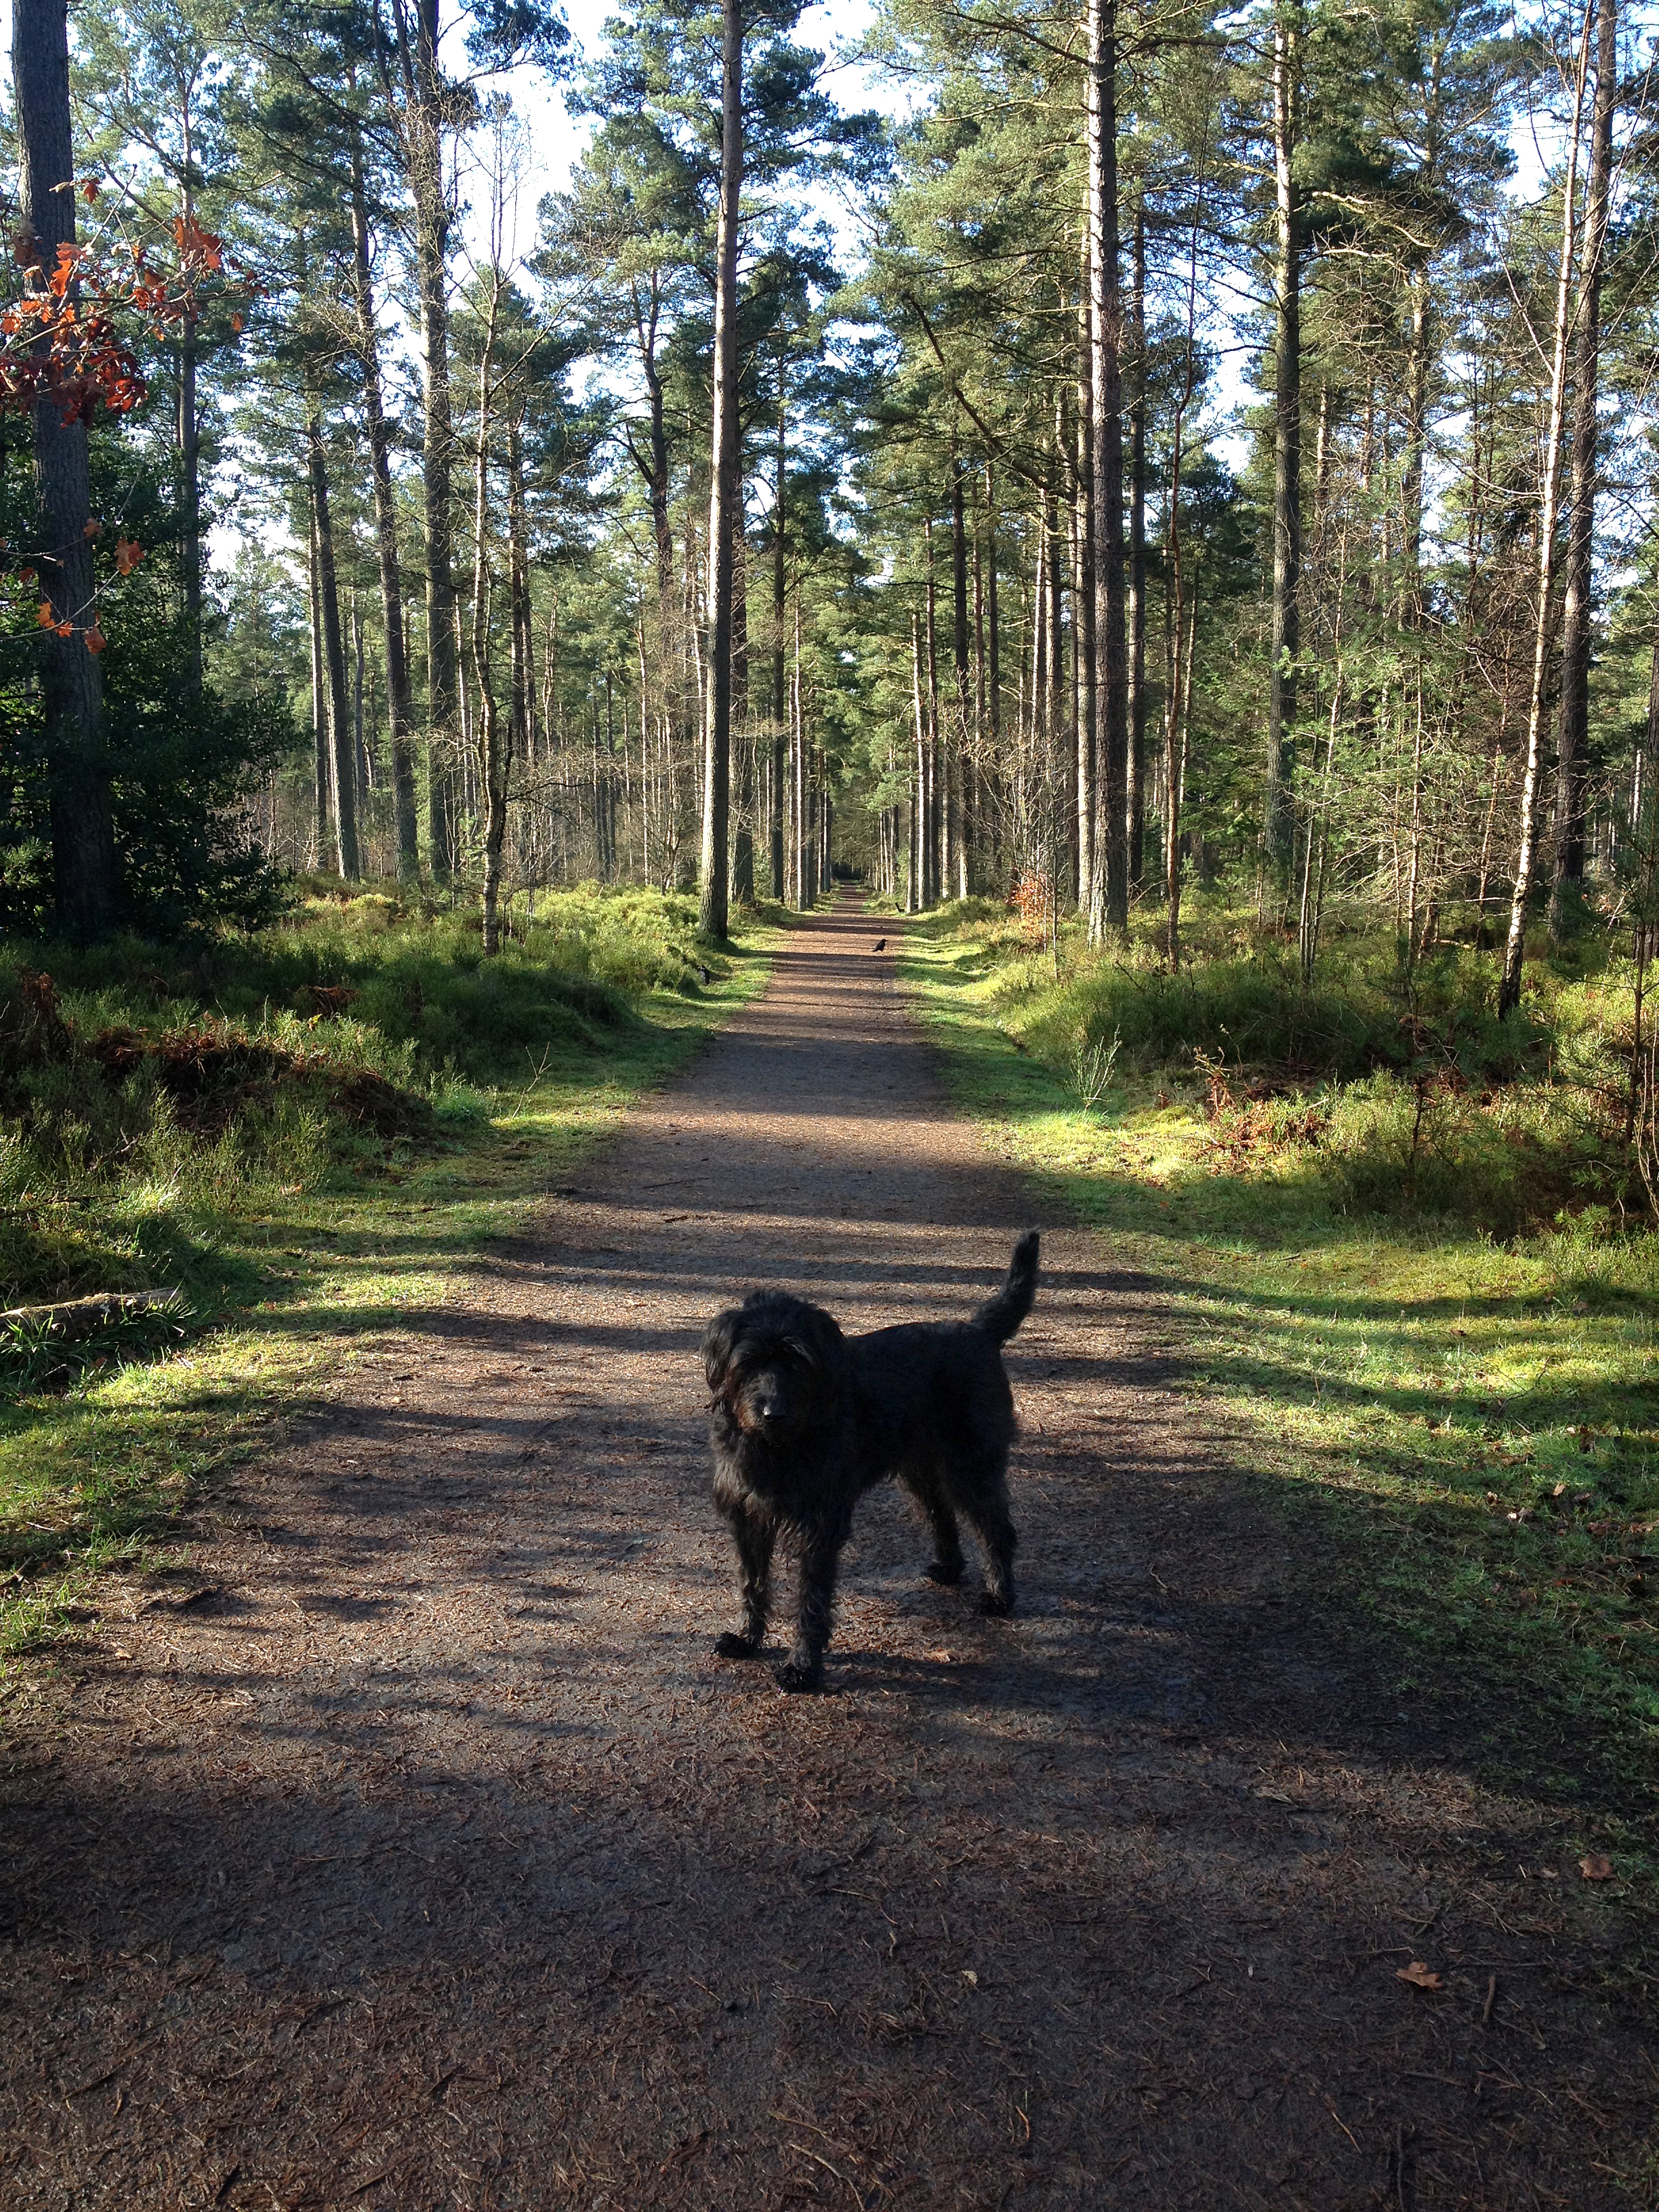 Vane Farm Nature Reserve Fife and Angus, Welcome to Fife : It's a Dog's Fife